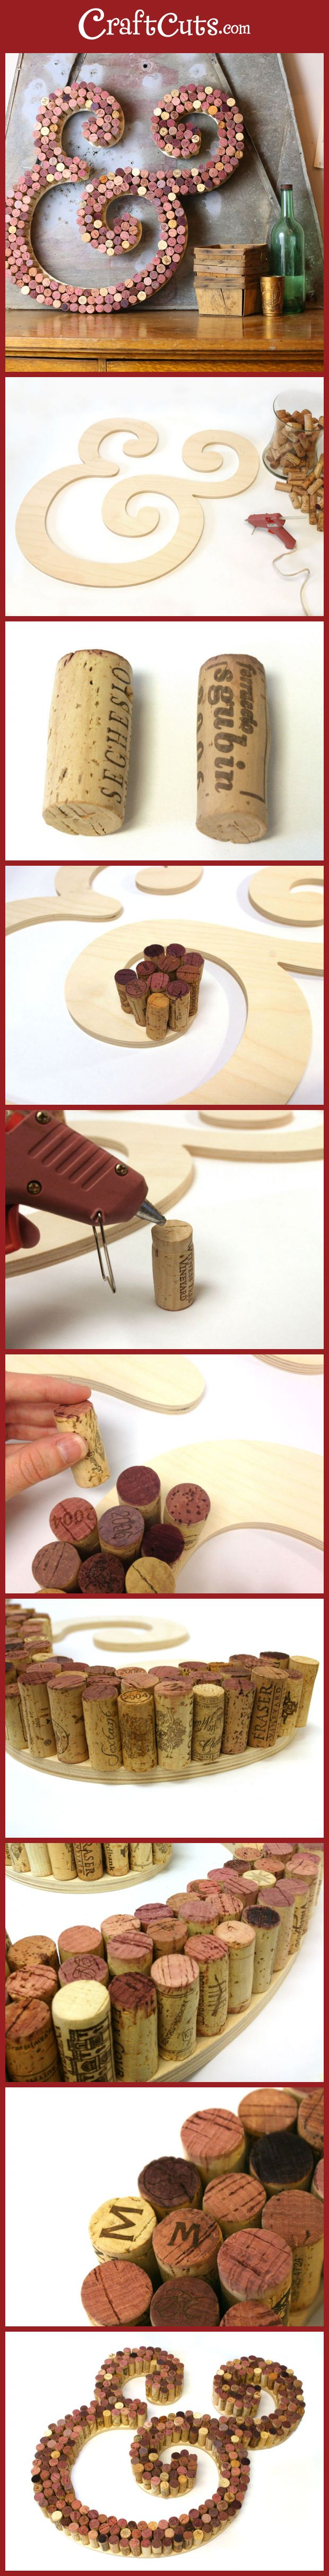 Use recycled wine corks to create this gorgeous cork letter   CraftCuts.com